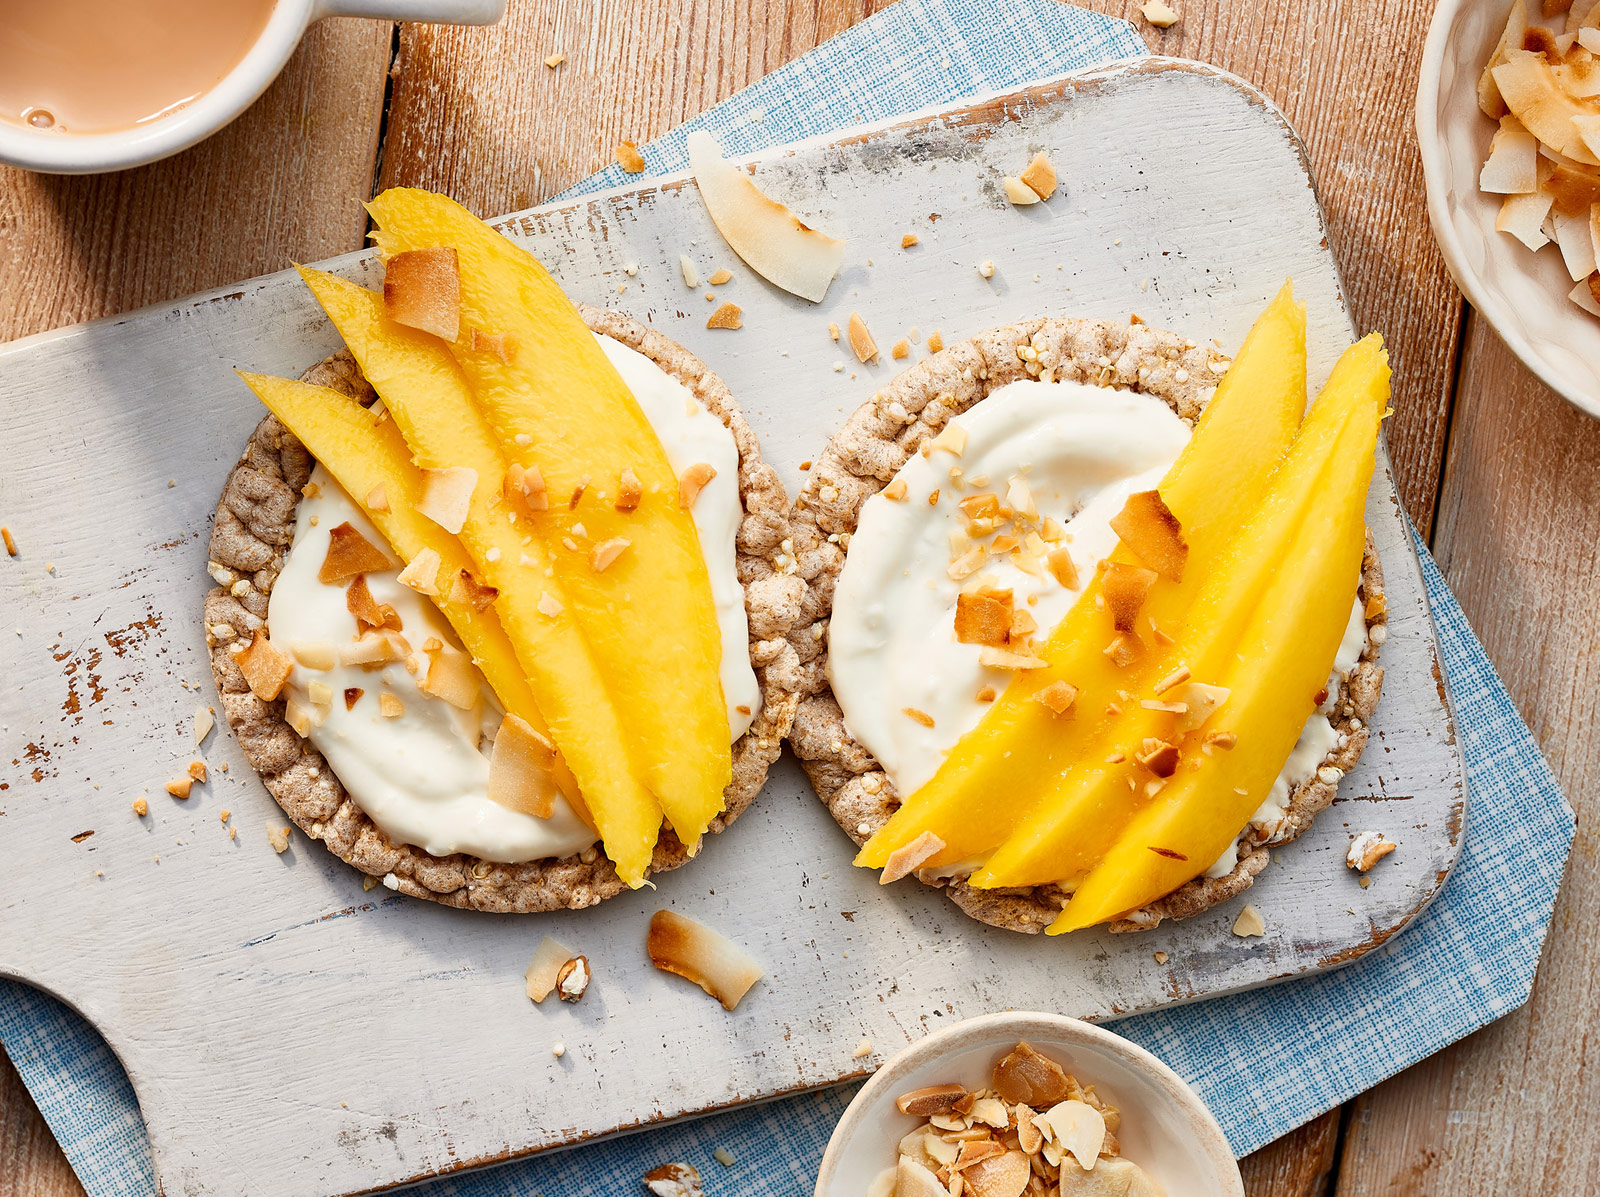 Coconut Yogurt & Mango with a Crunchy Sprinkle